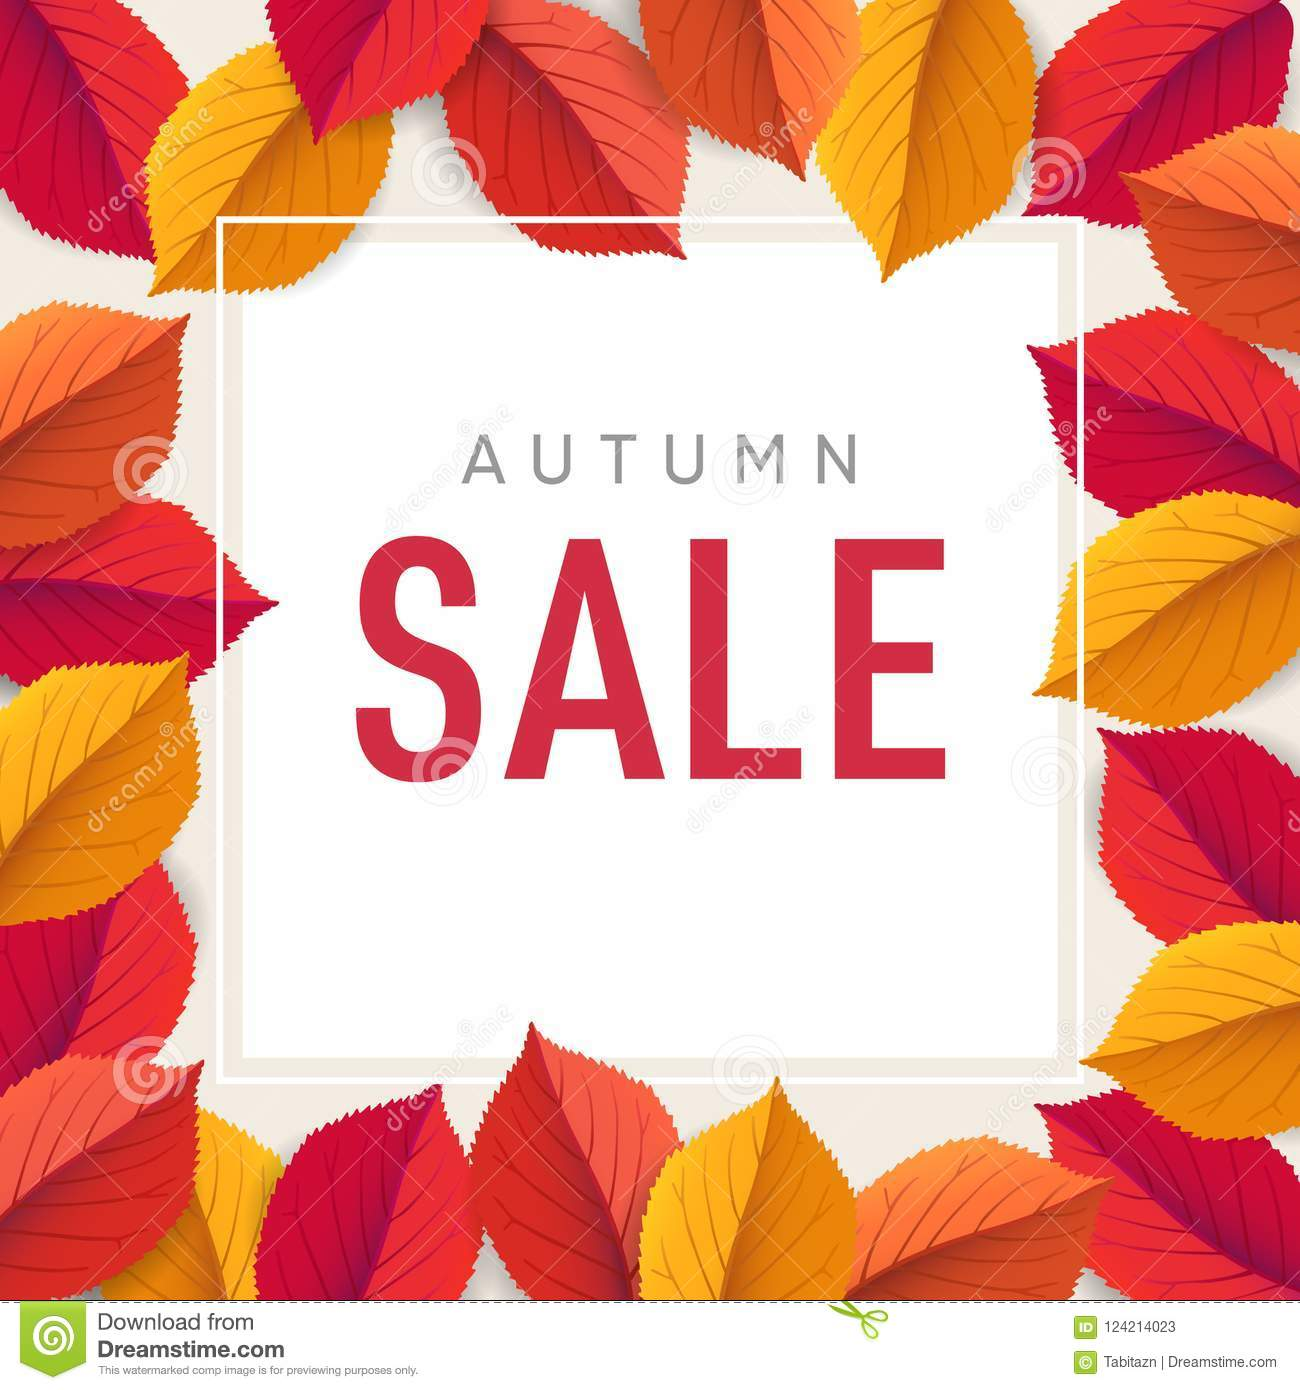 autumn sale flyer template bright colorful fall leaves poster